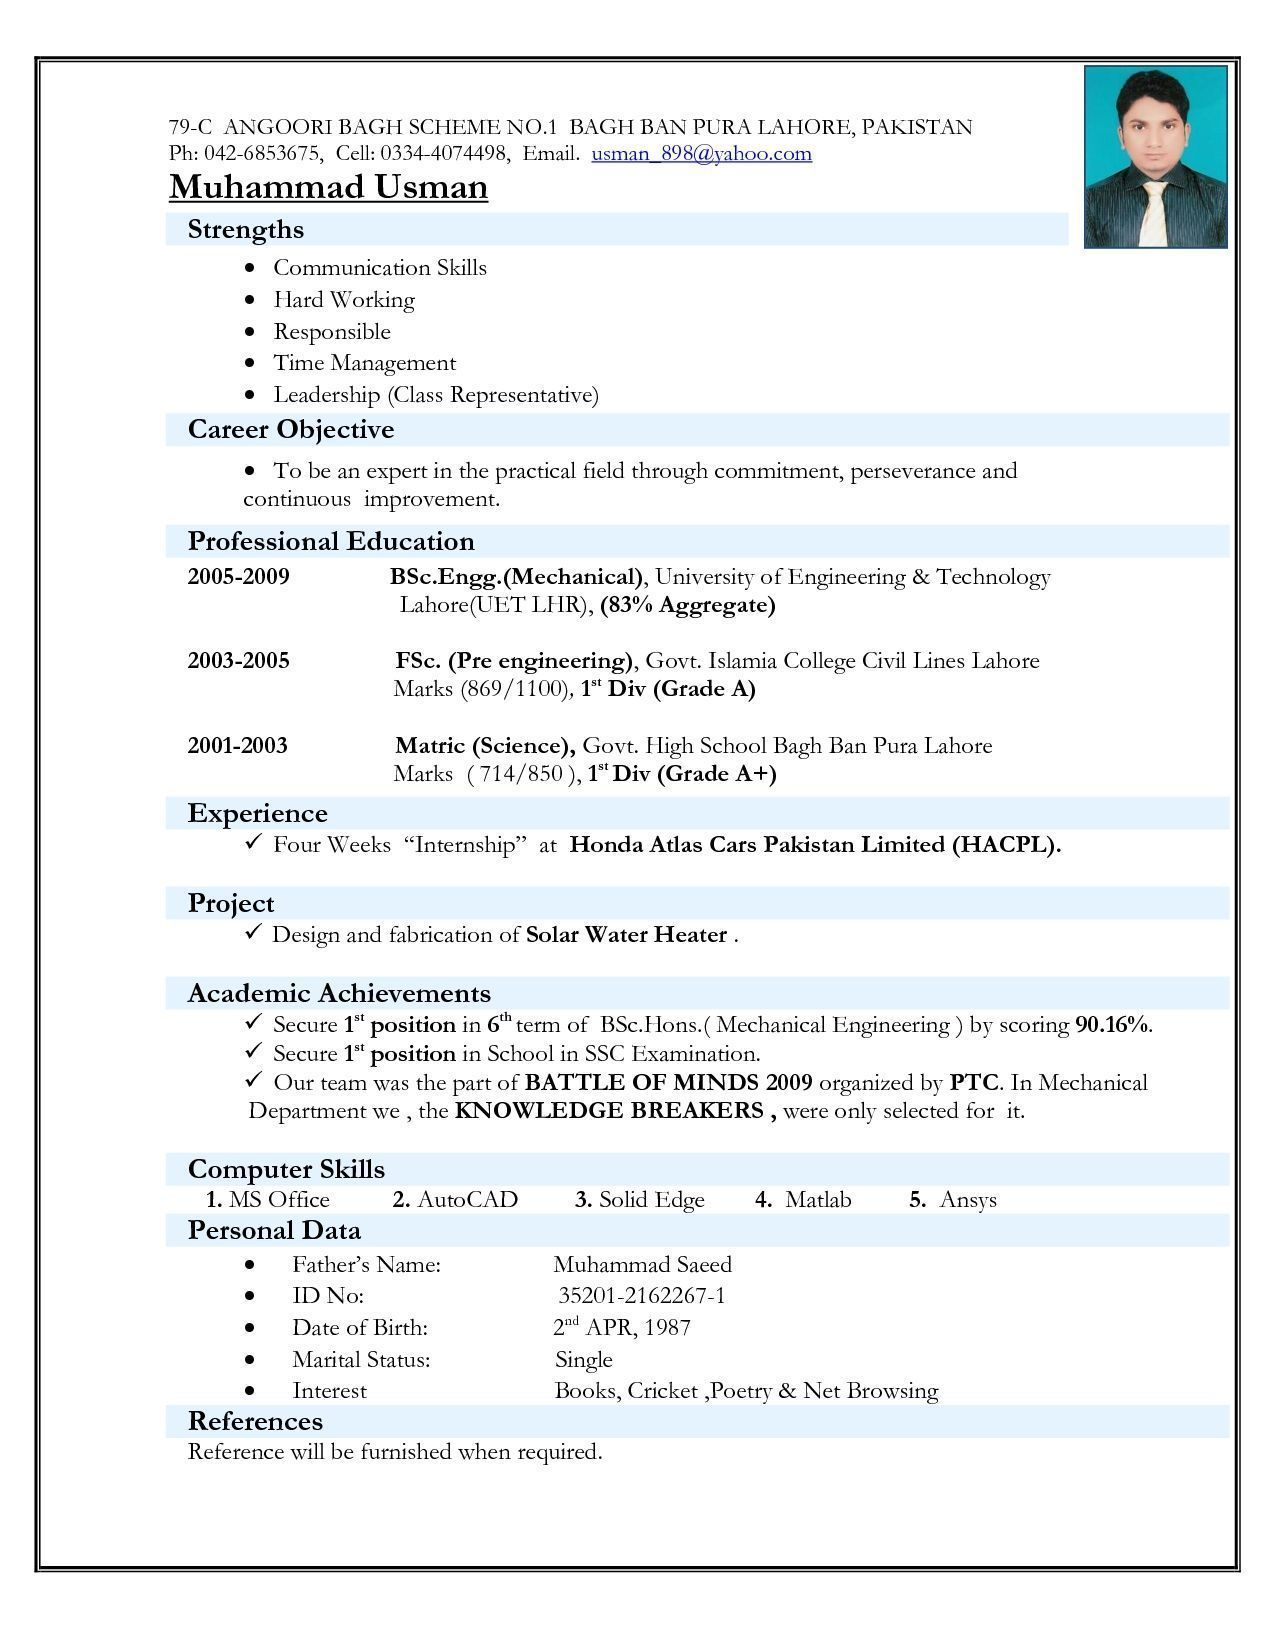 Resume Examples by Industry and Job Title Resume format